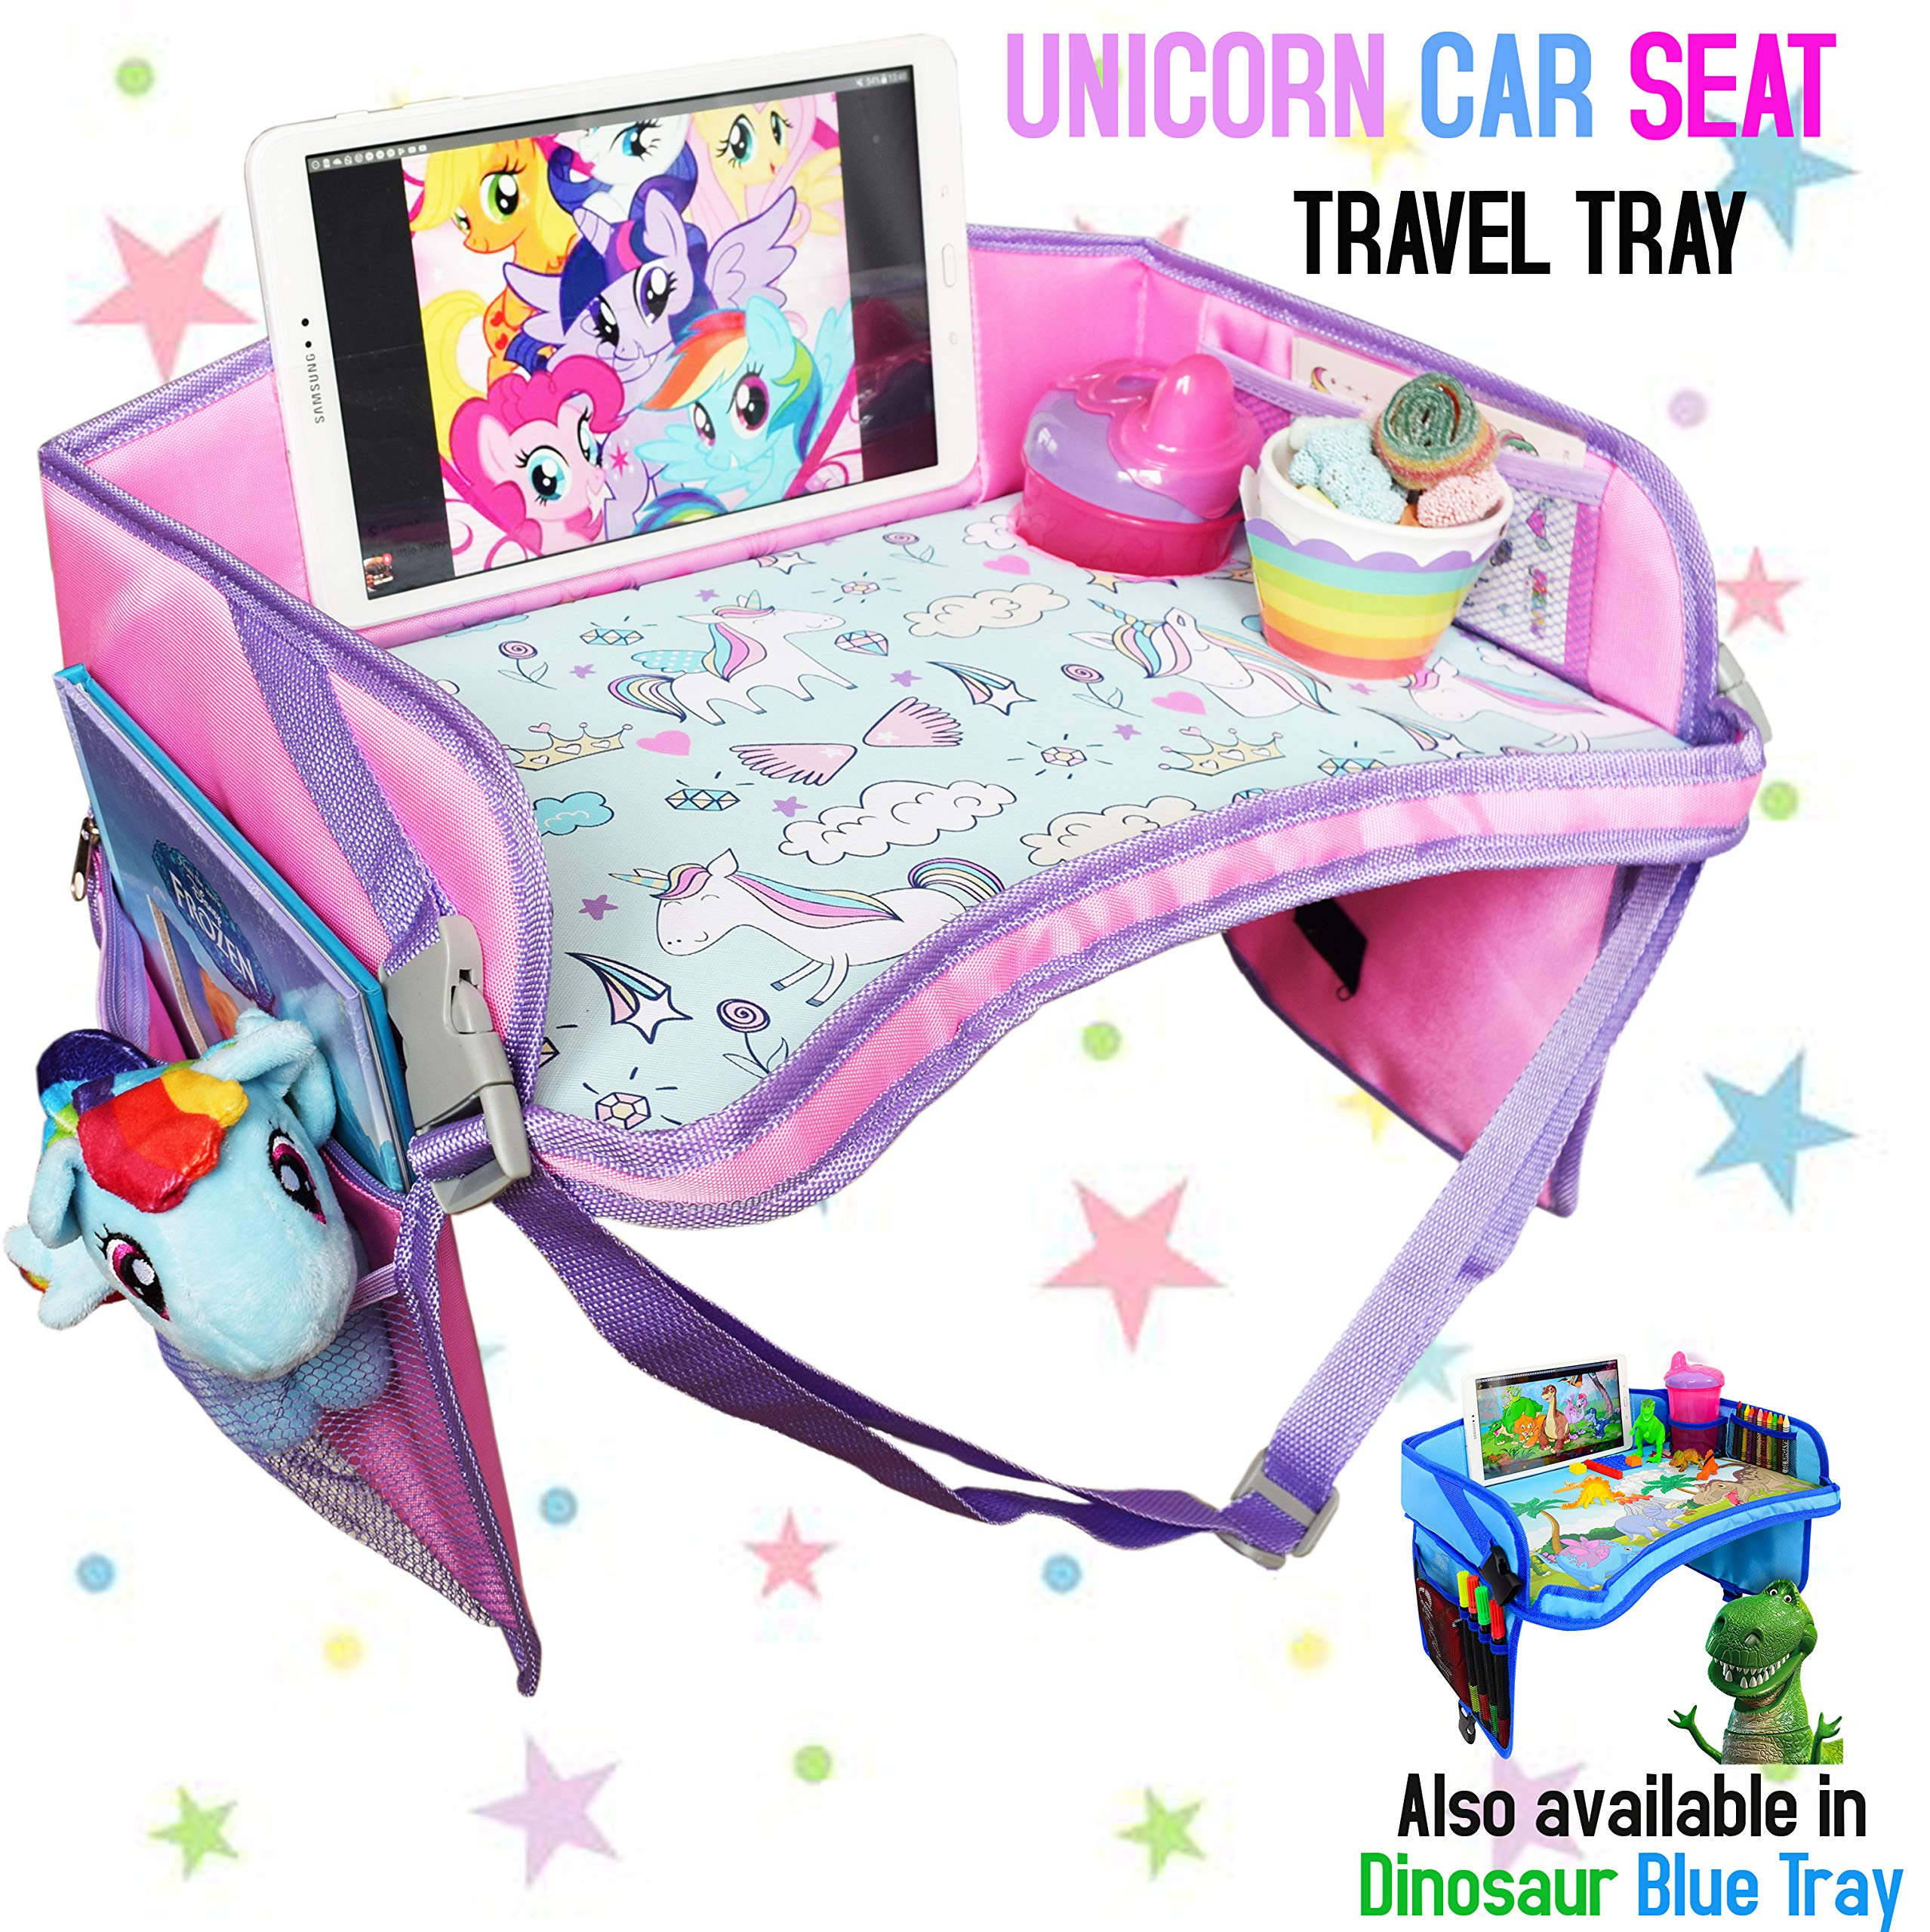 CarSeat Tray - The Only One Toddler Travel Tray Guaranteed to Keep Kids Occupied & Entertain for Hours, Prevent Frustration While Driving, Perfect Unicorn Gifts for Girls by ecoZen Lifestyle